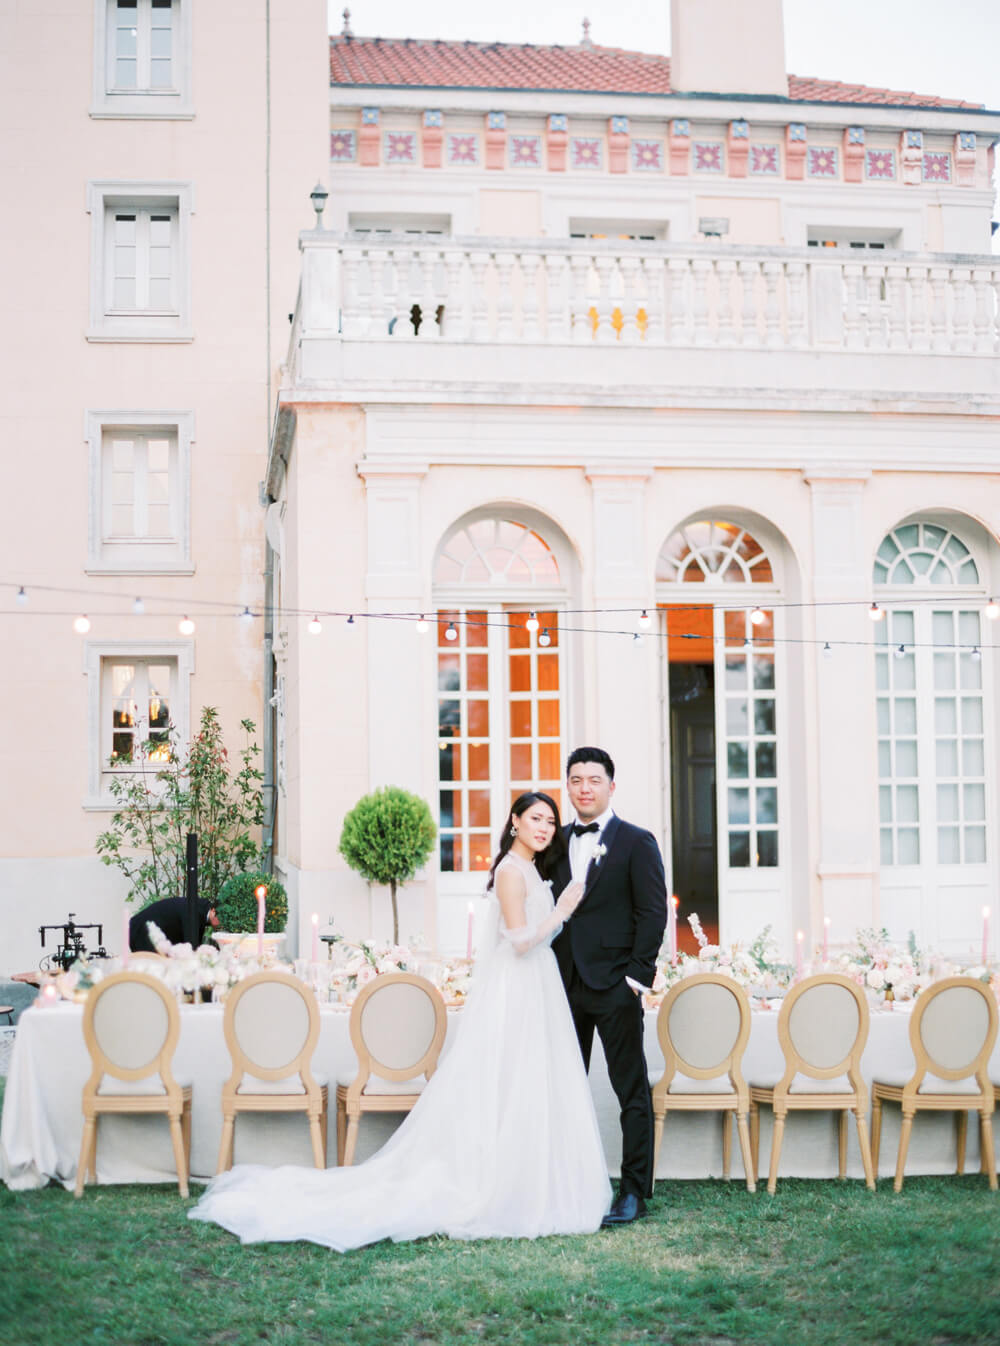 Château Saint Georges, Cote d'Azur - an event & destination wedding venue in Grasse on the French Riviera, South of France, near Nice & Cannes.